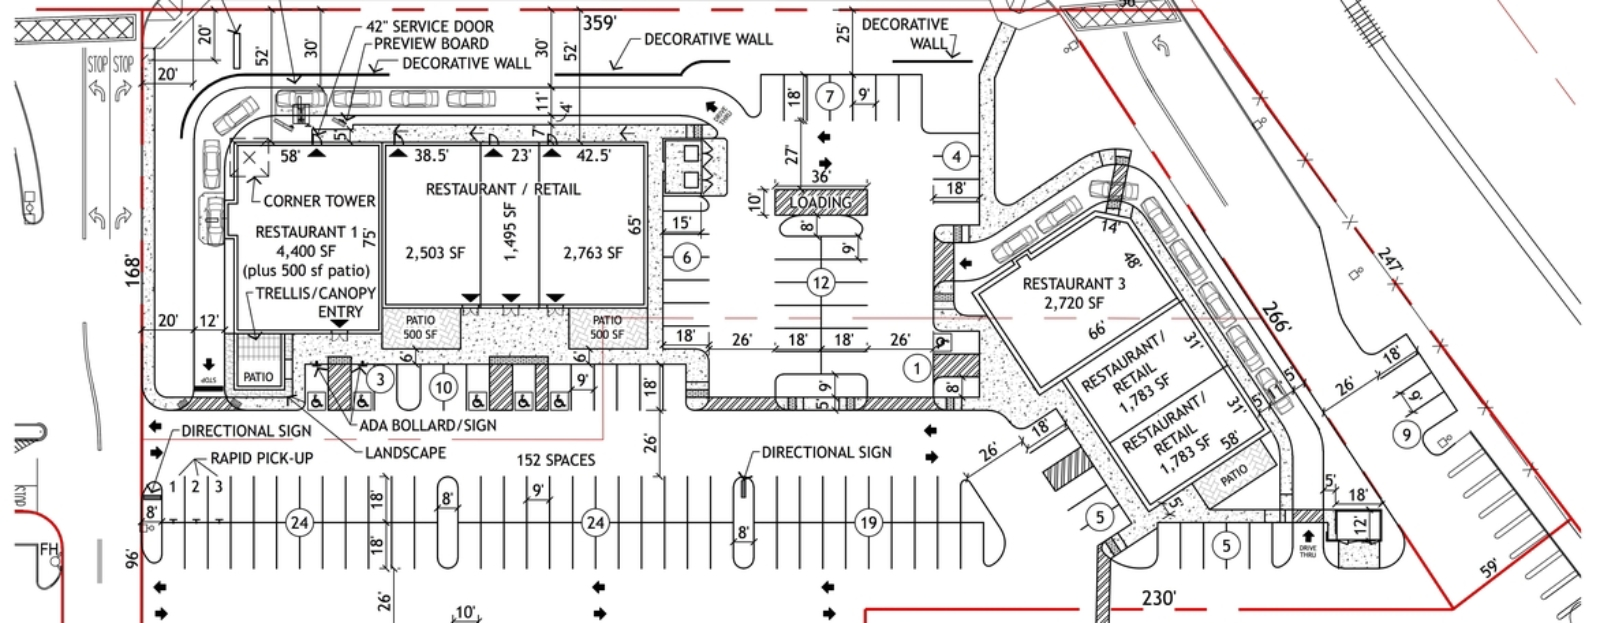 Image Gallery Site Plan